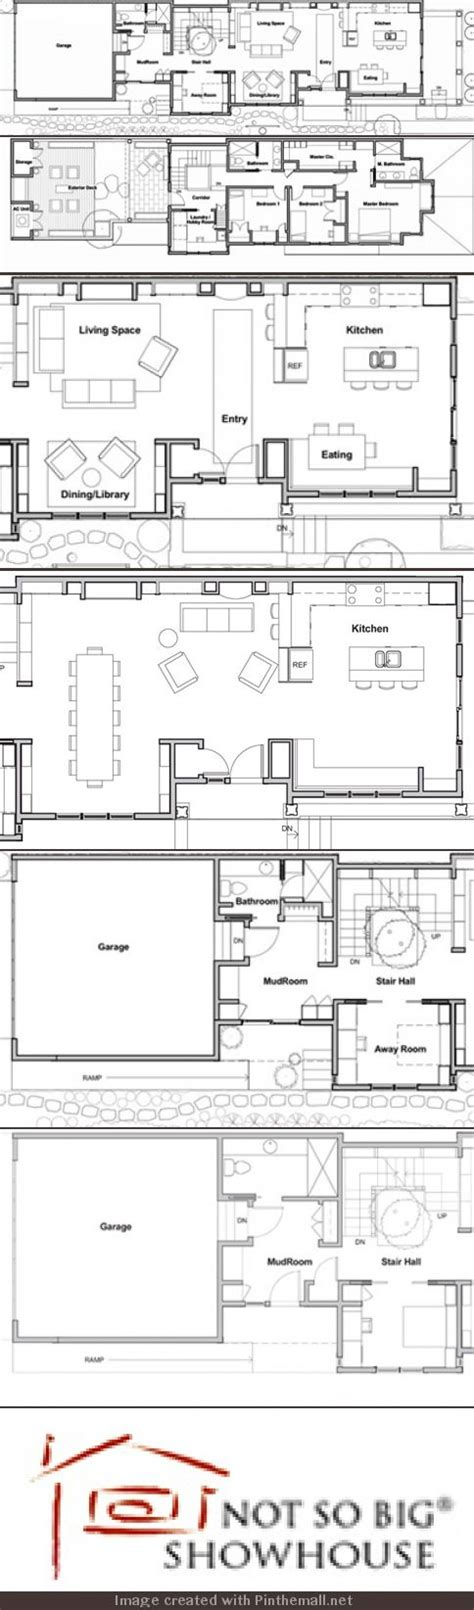 not so big house plans best floorplans layouts images on apartment